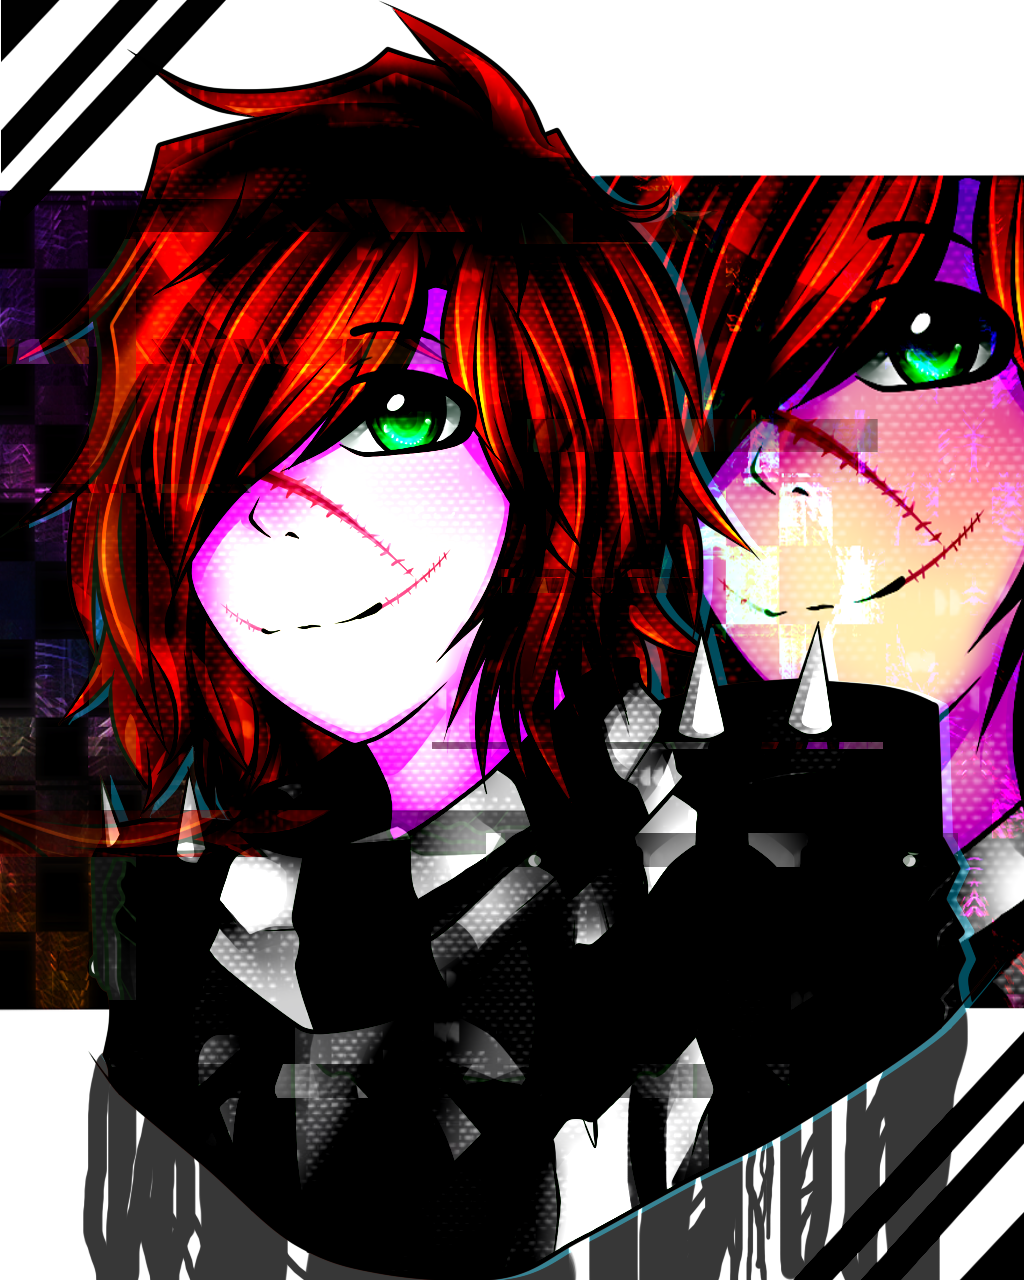 creepypasta dating quizzes Would laughing jack date you, laughing jack quiz, creepypasta dating sim game, ticci toby dating sim, jeff the killer dating simulator, .